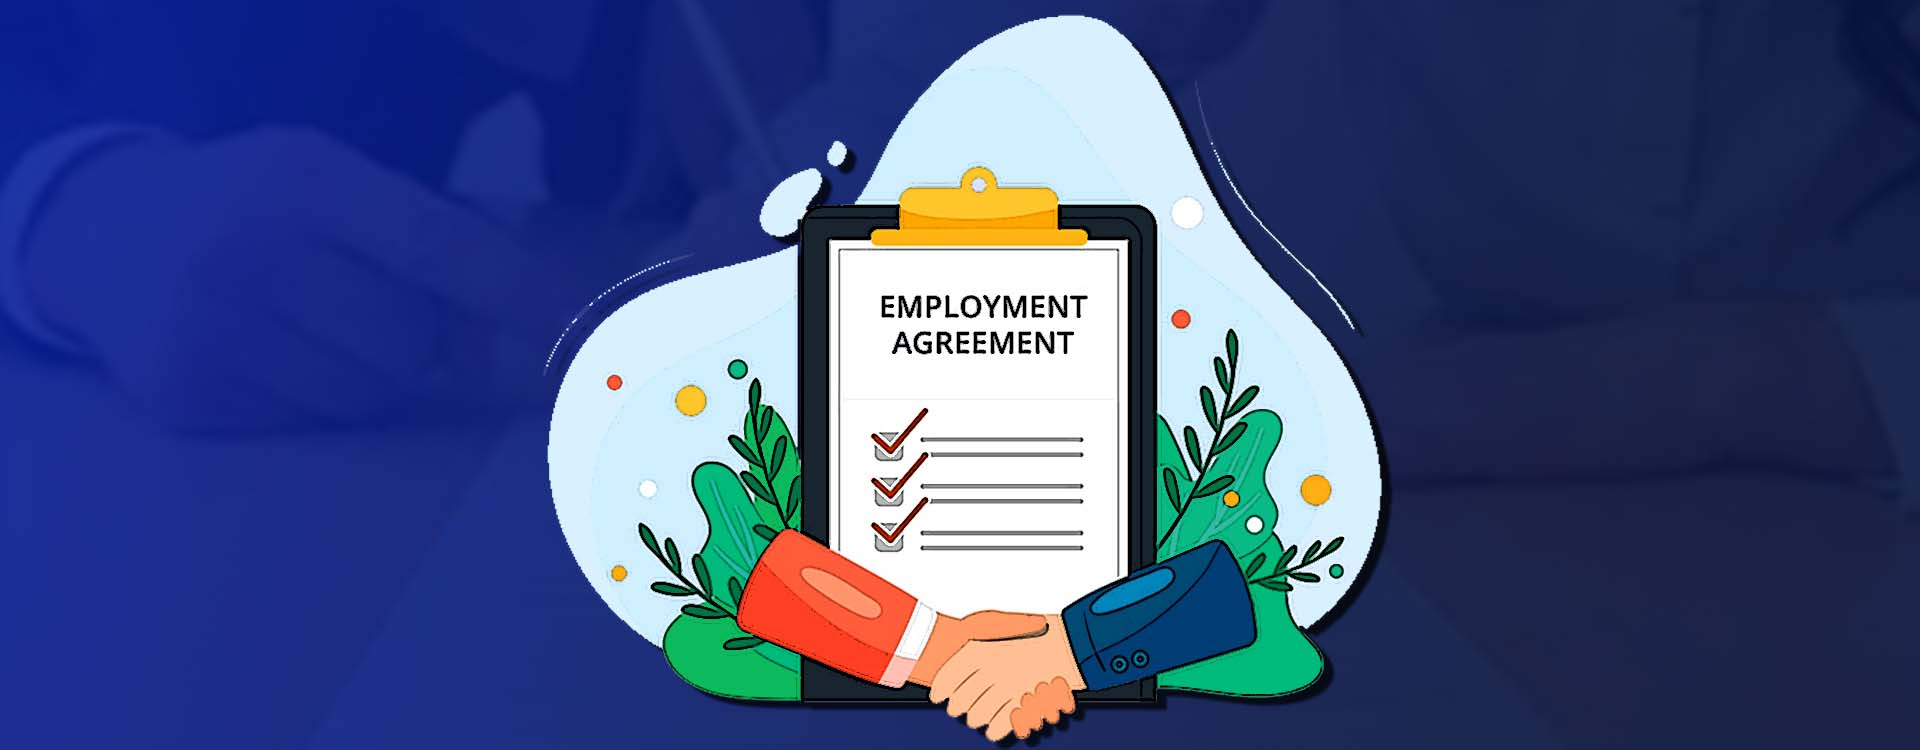 Knowing all about the Employment Agreement before checking in